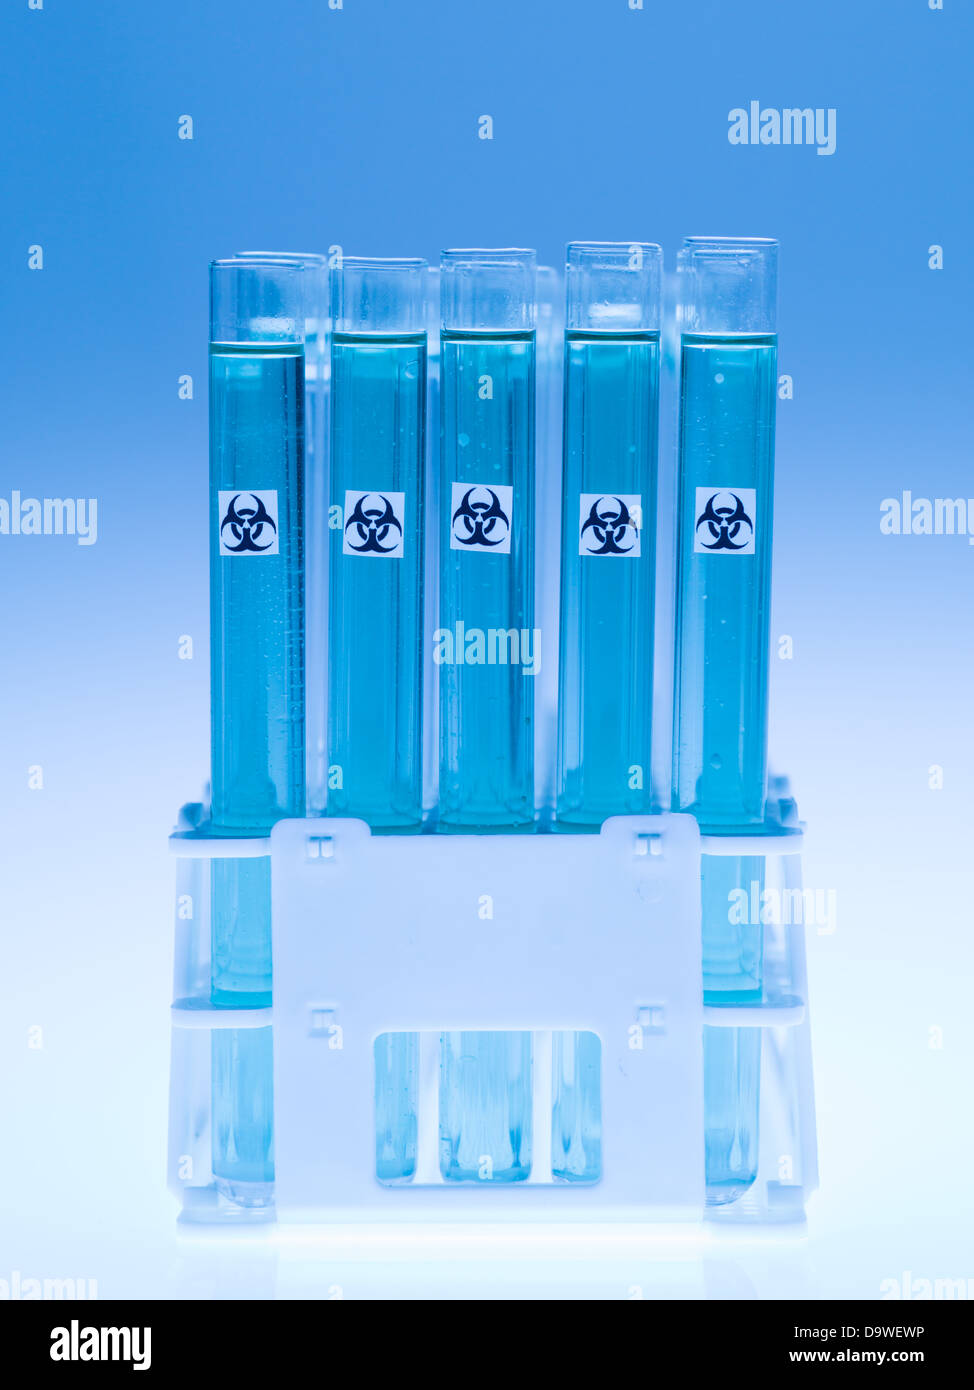 front view of experimental test tubes filled with transparent blue substance and marked as bio hazardous, against Stock Photo